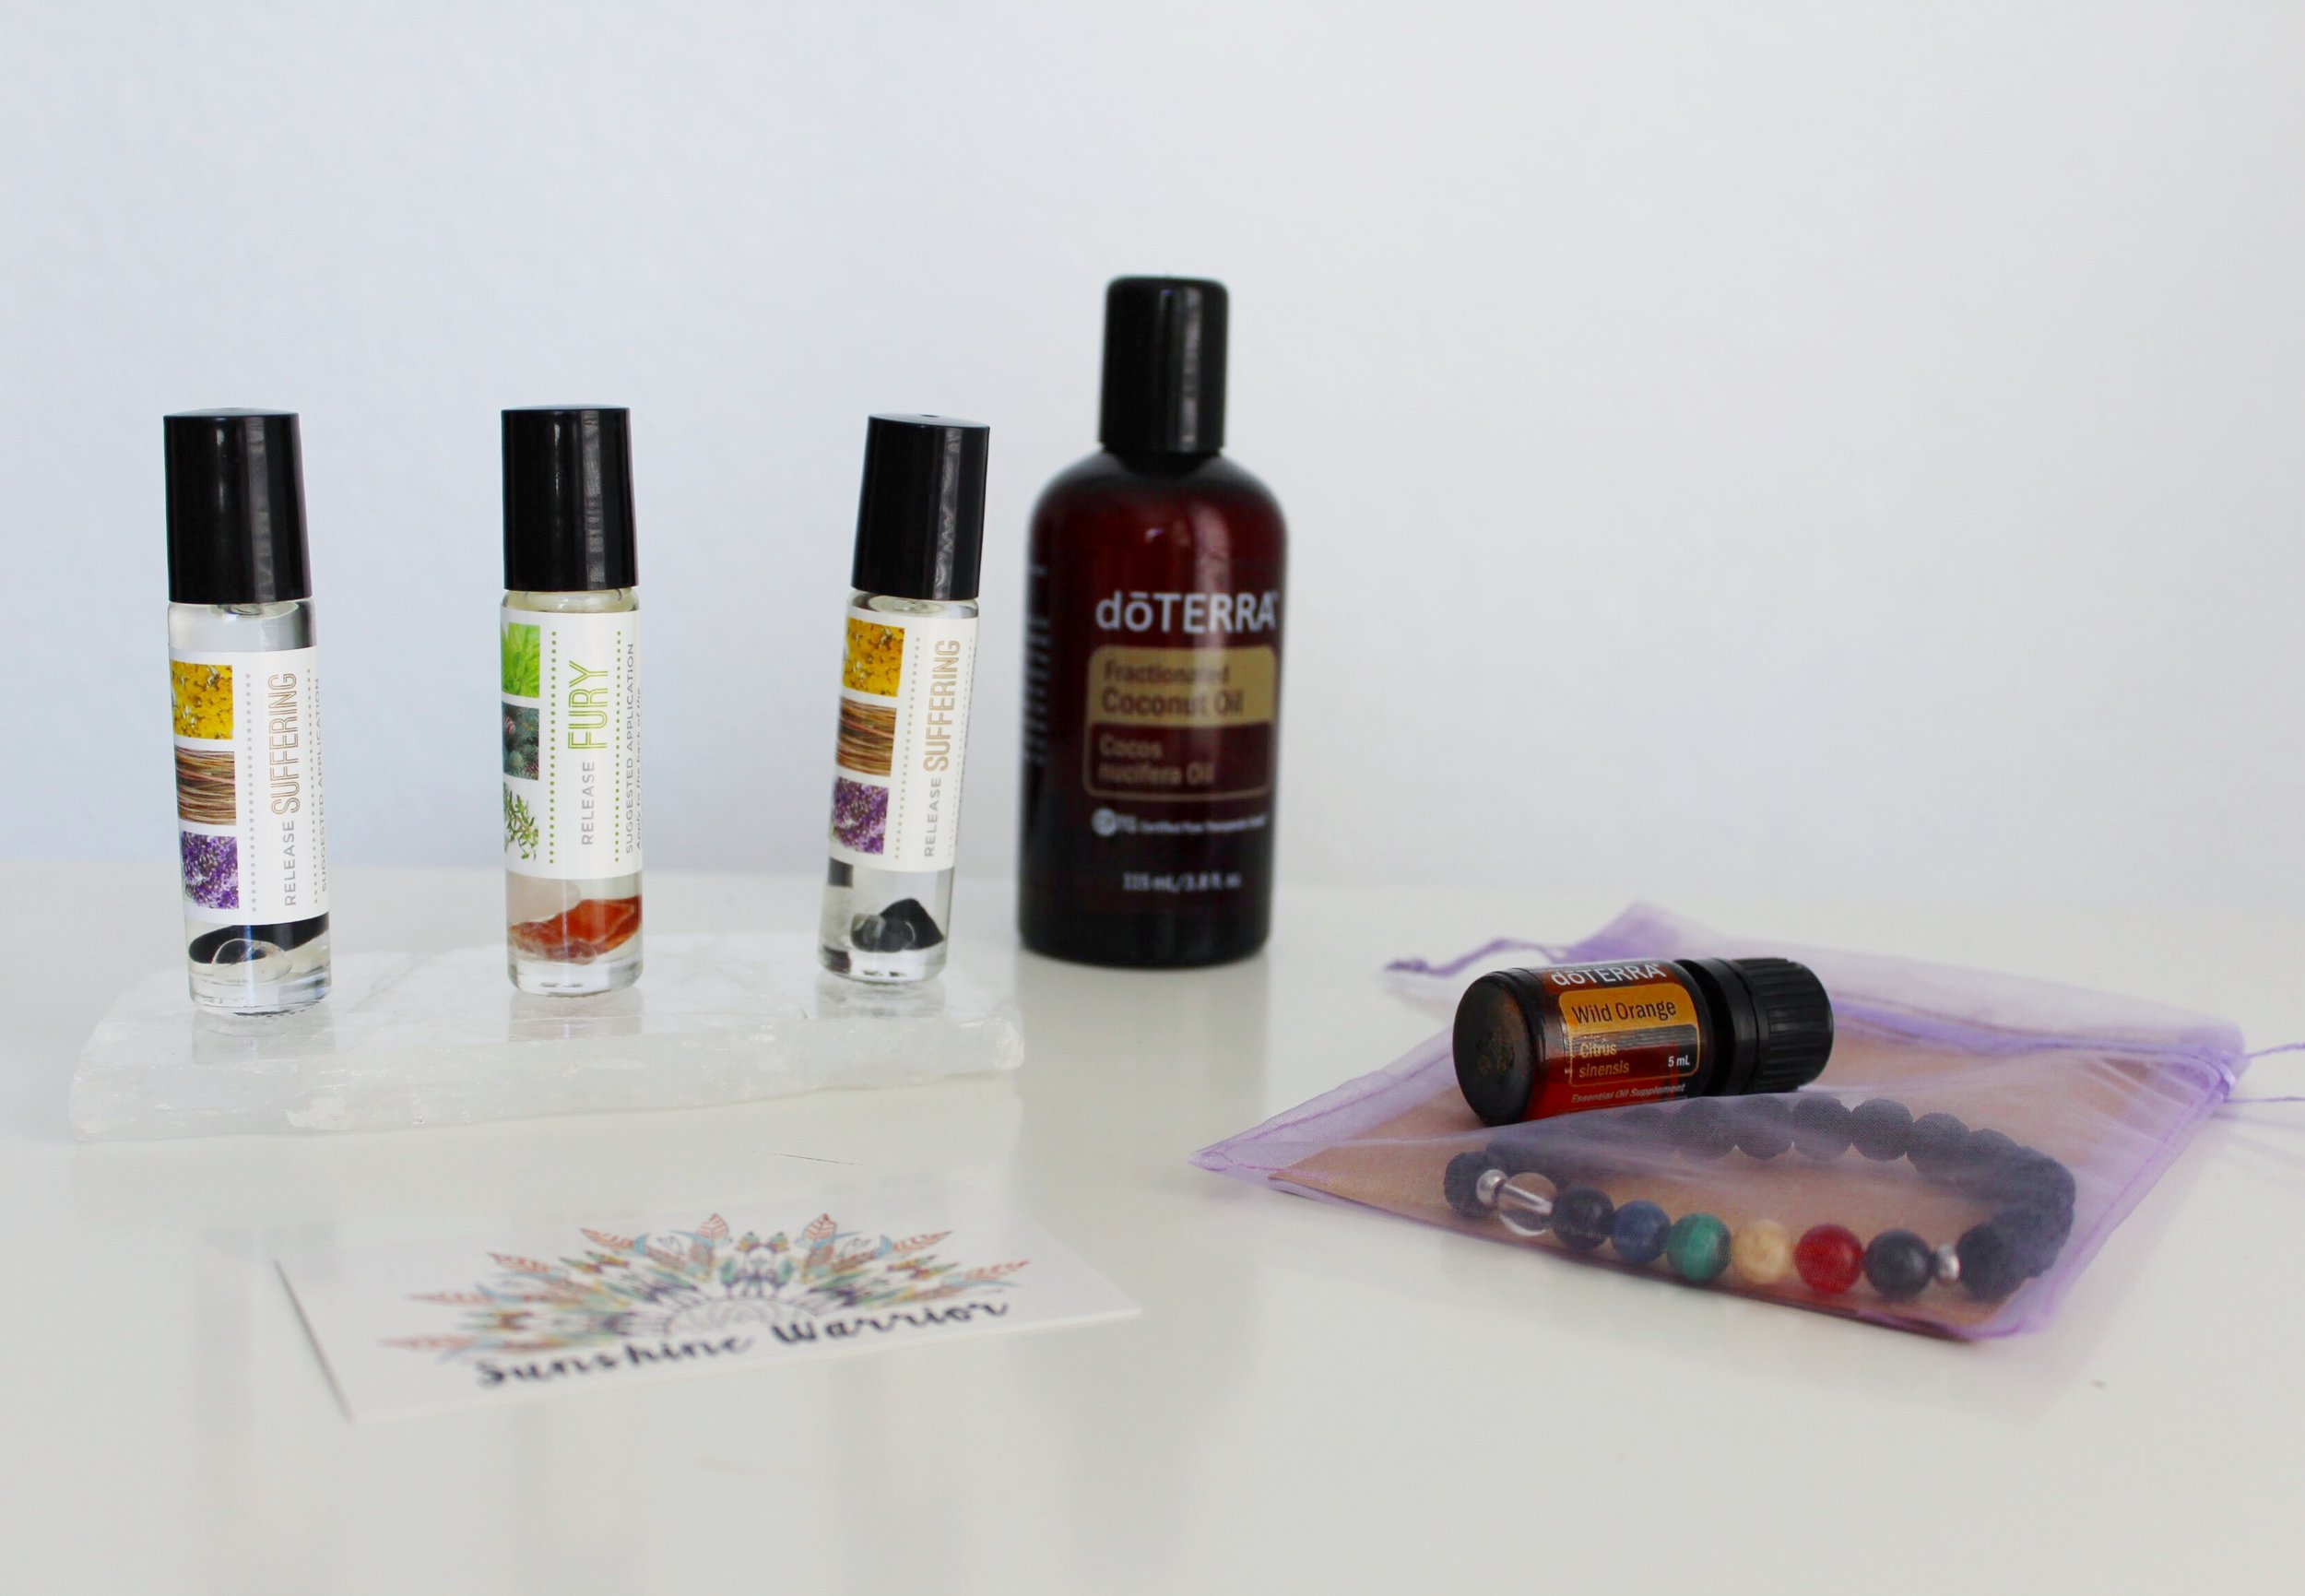 Personal Roll On Oil Blends and Coconut Oil from DoTerra